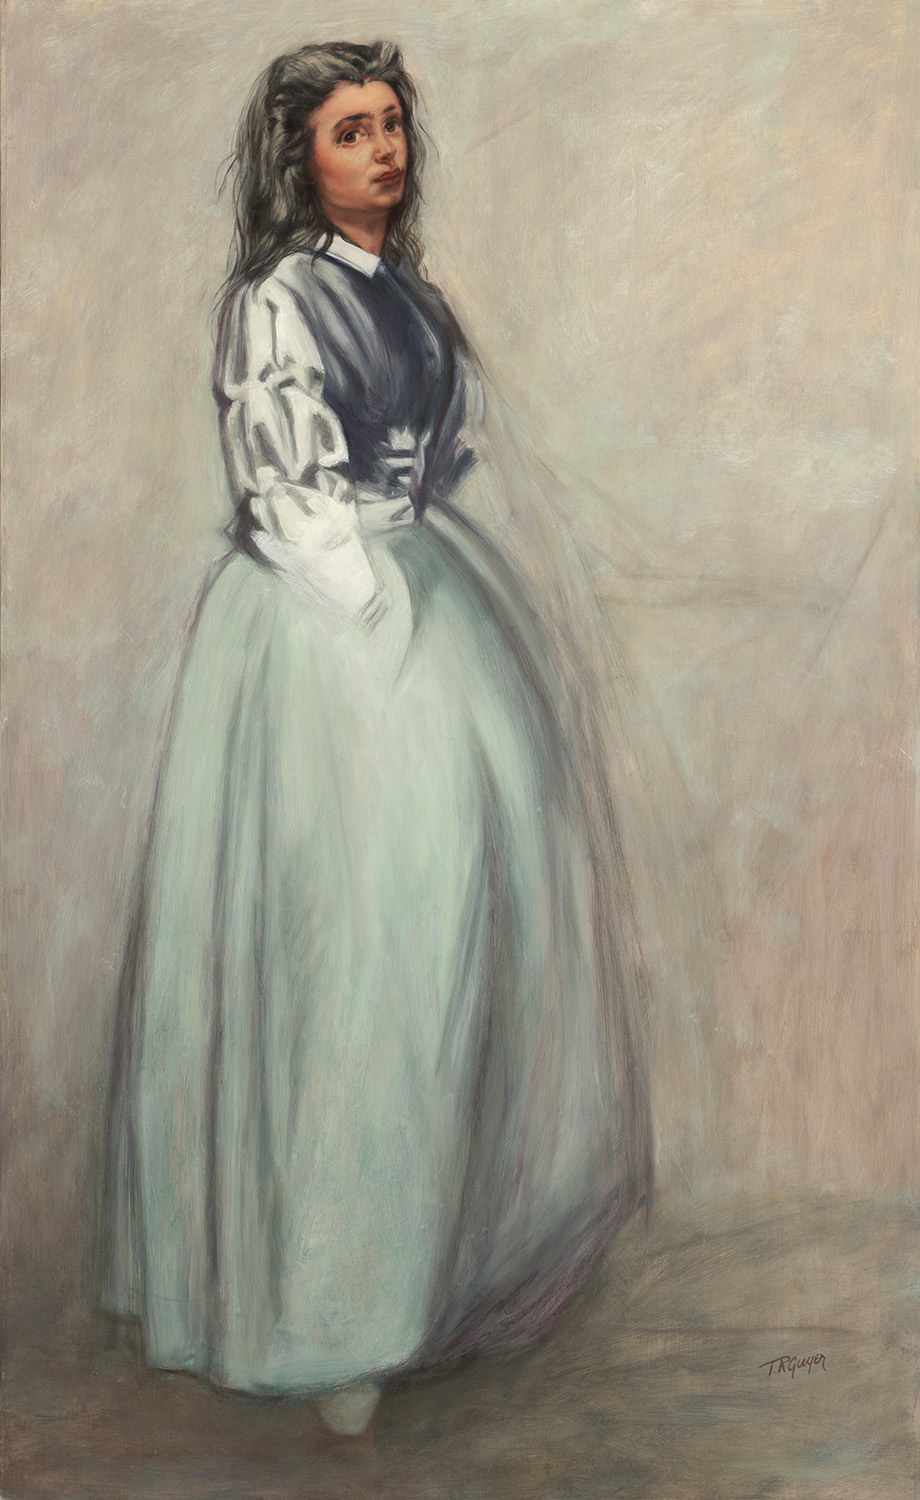 """ Fumette Standing"" after a James Abbott McNeill Whistler Etching,  40x25.5"" oil on linen"